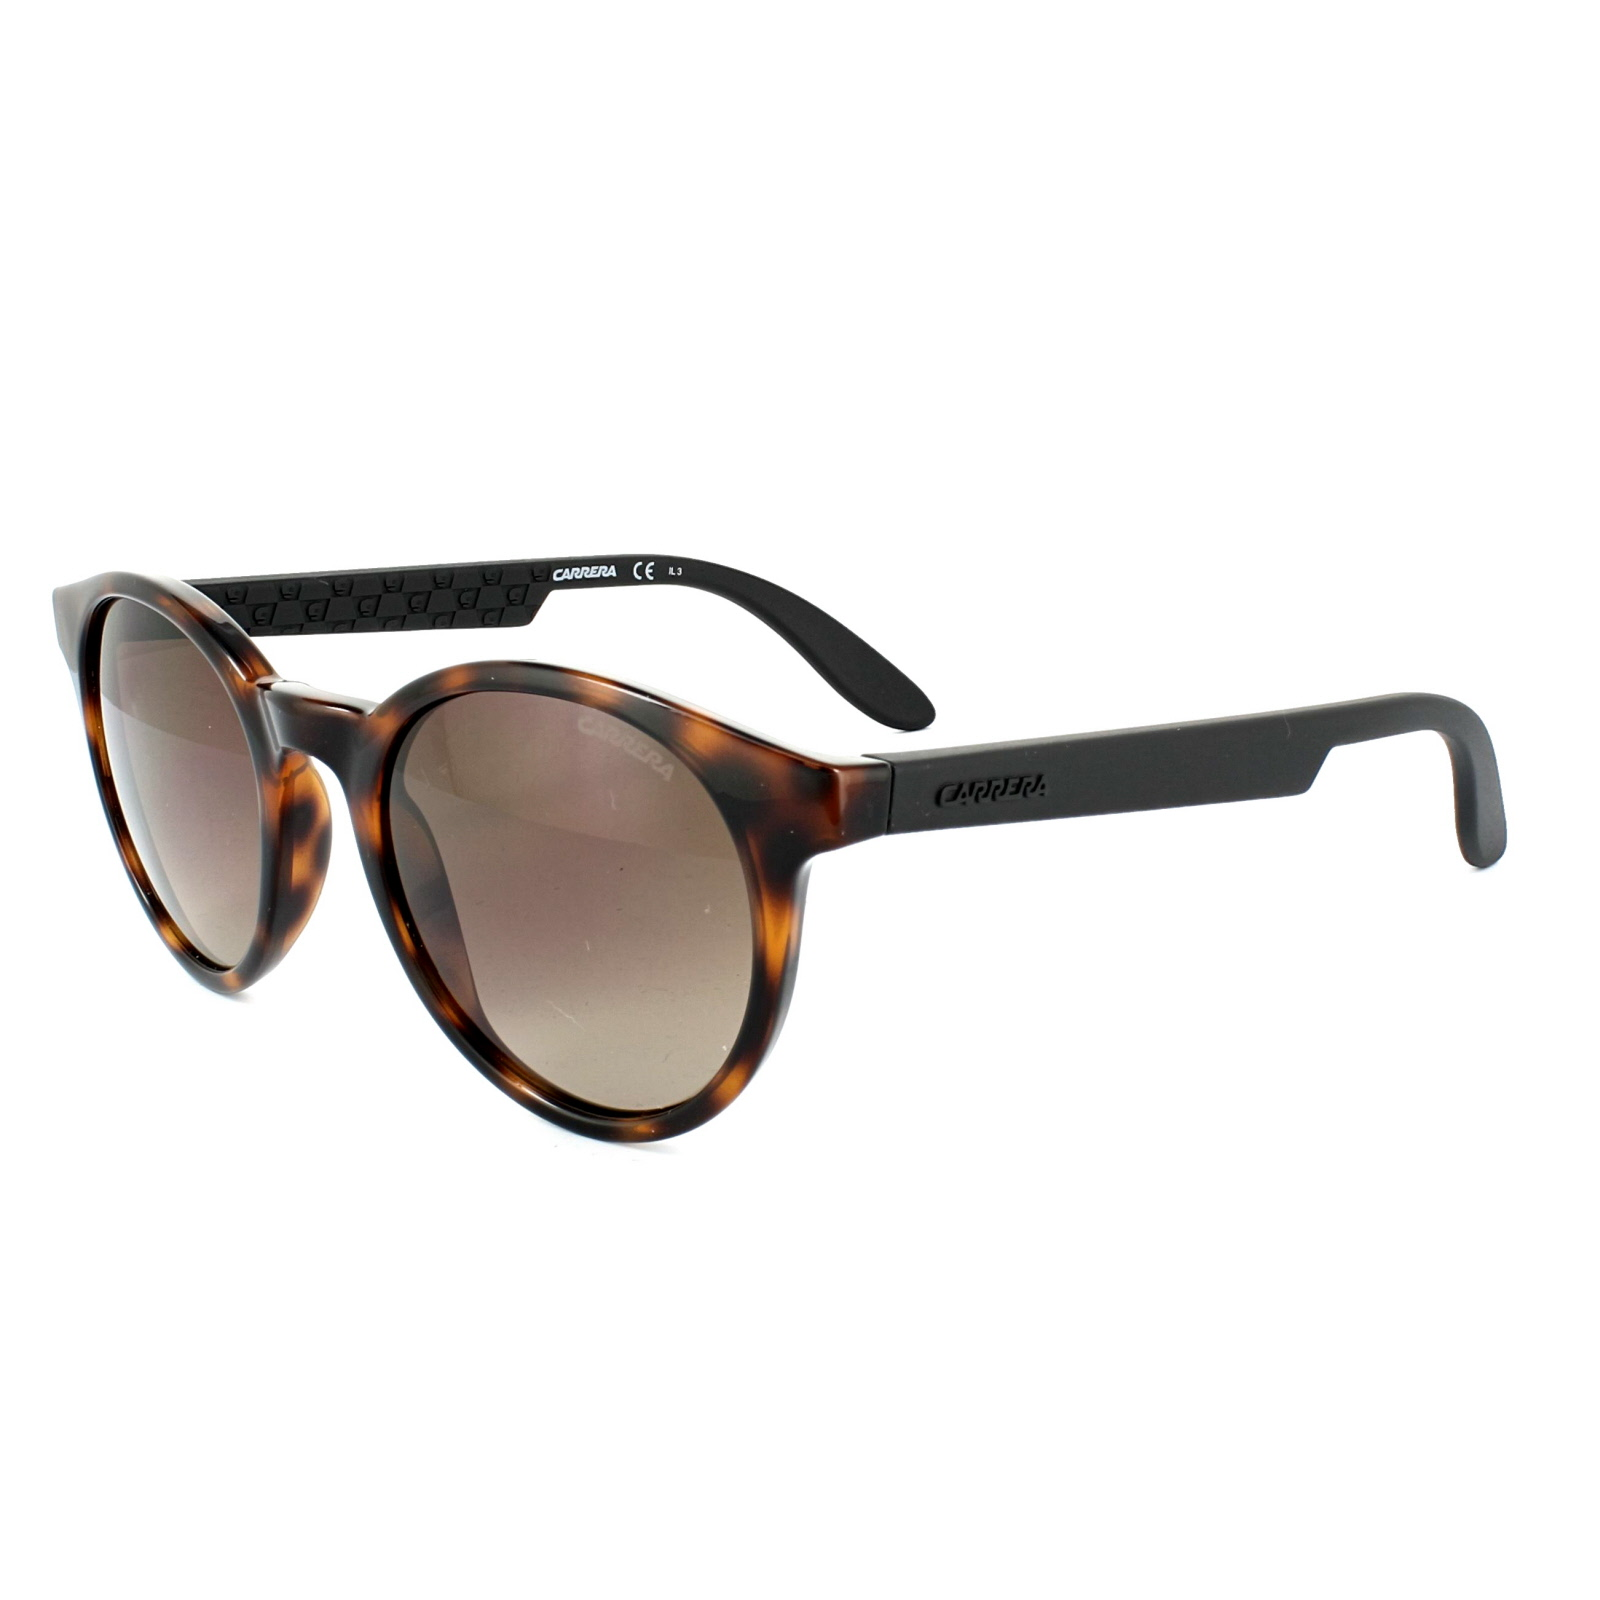 1d5bcb11b6dbf Cheap Carrera Sunglasses - Discounted Sunglasses